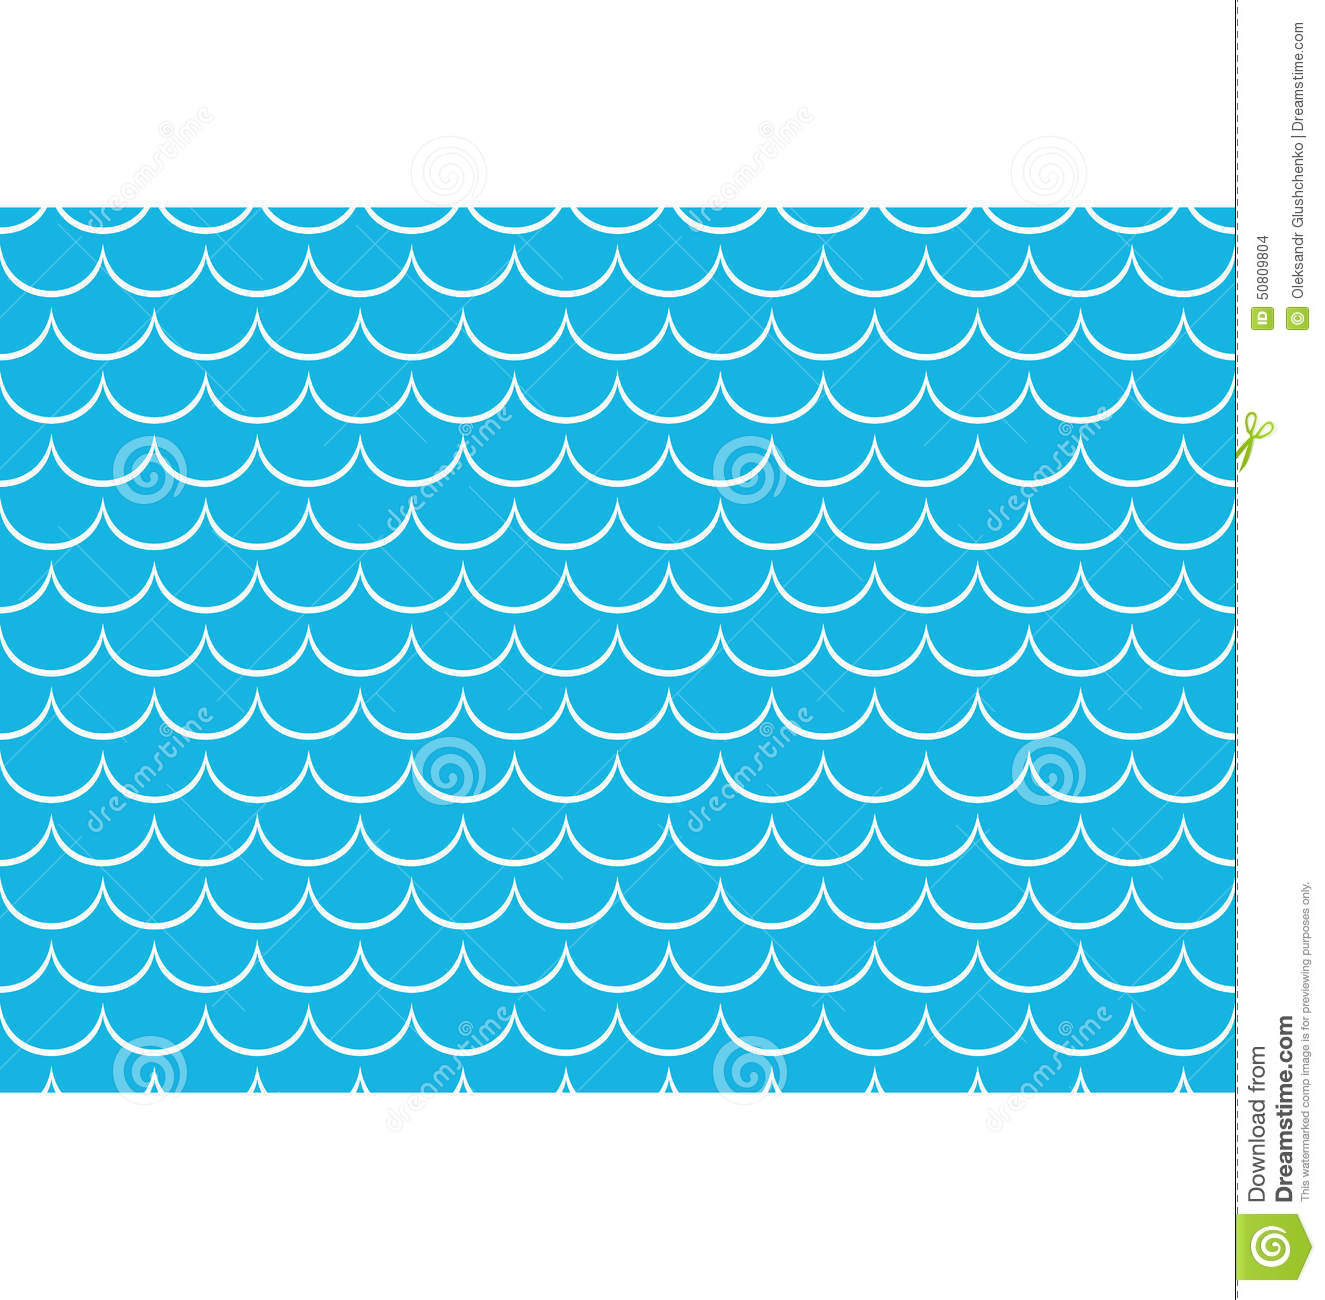 Seamless Sea Pattern White Scales On Blue Stock Vector - Image ...